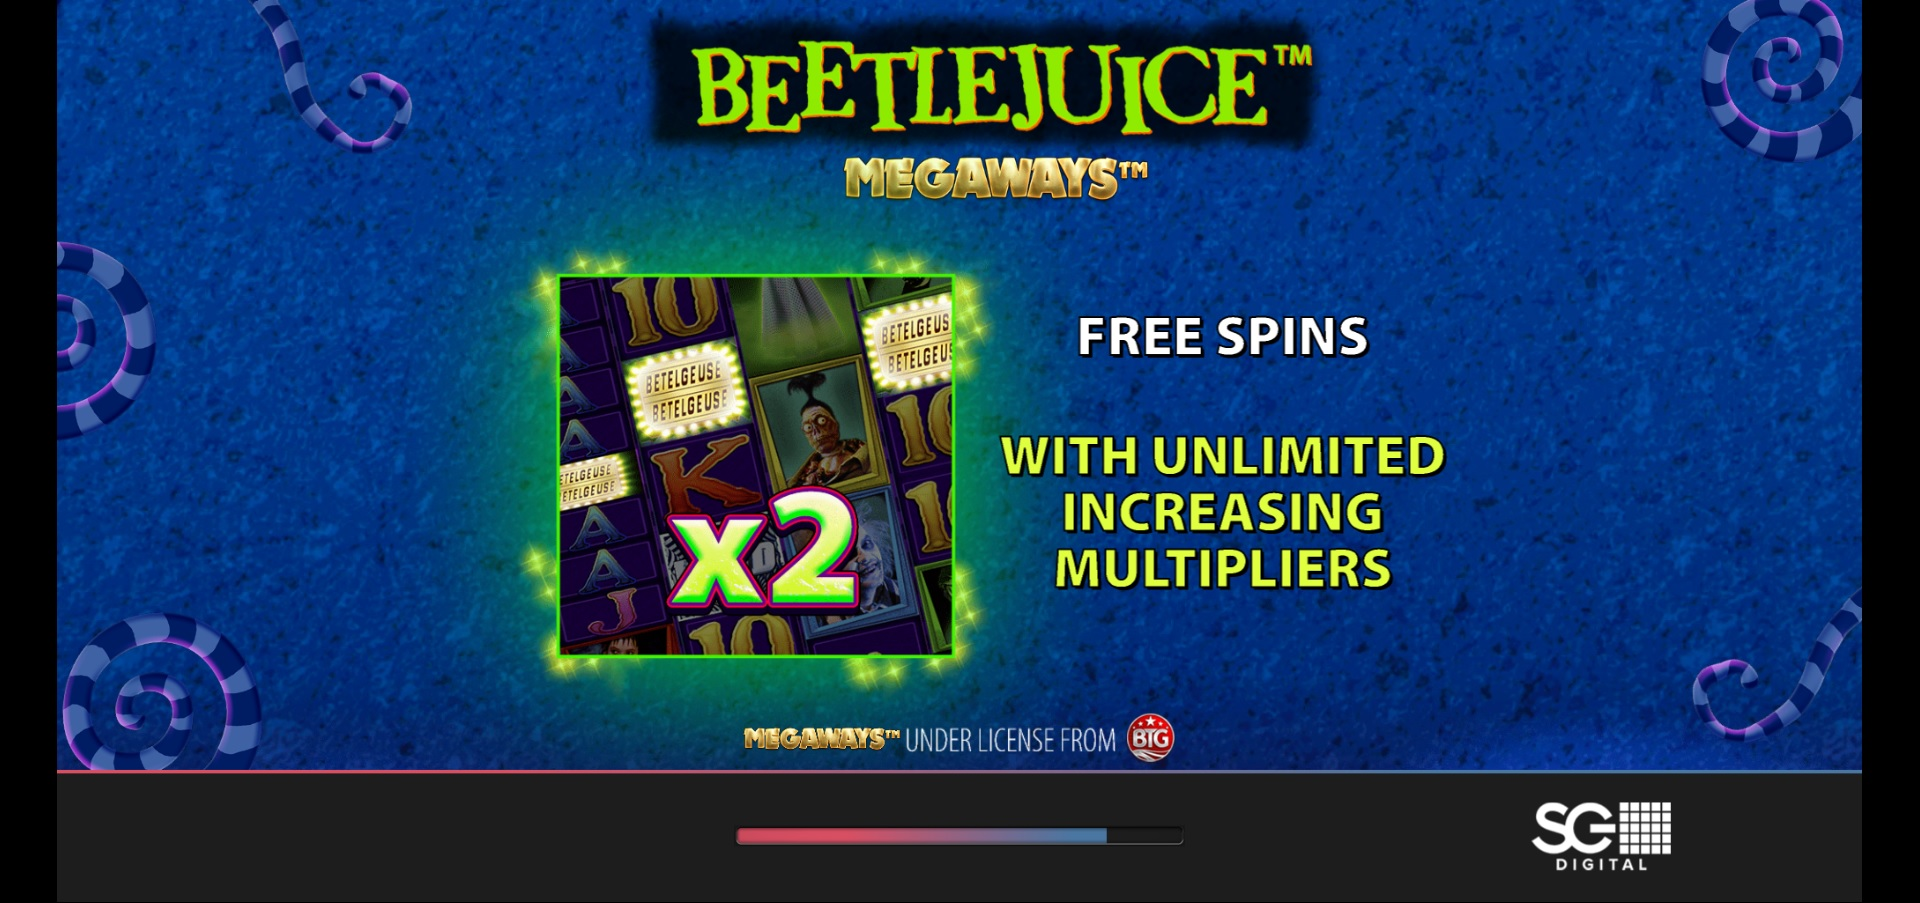 How to win big in Beetlejuice Megaways – Free Spins